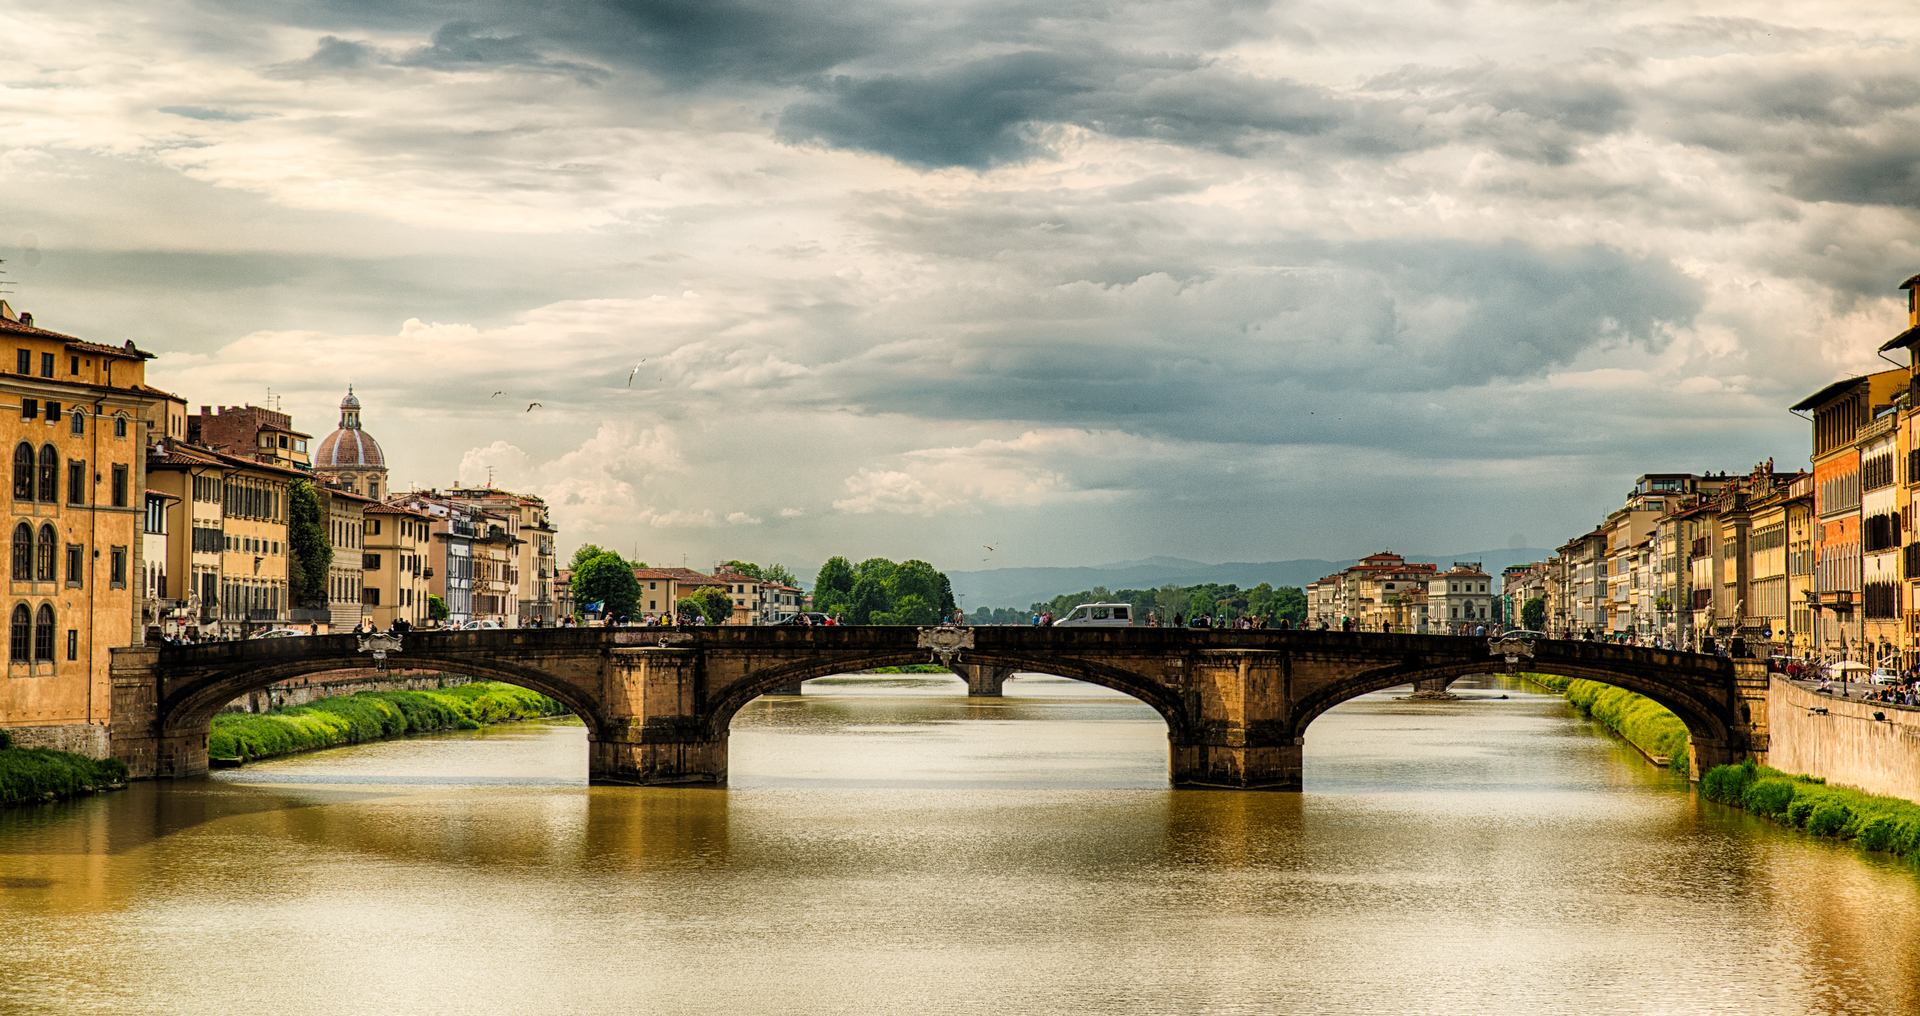 stories/2016-06-30-bridges-of-florence